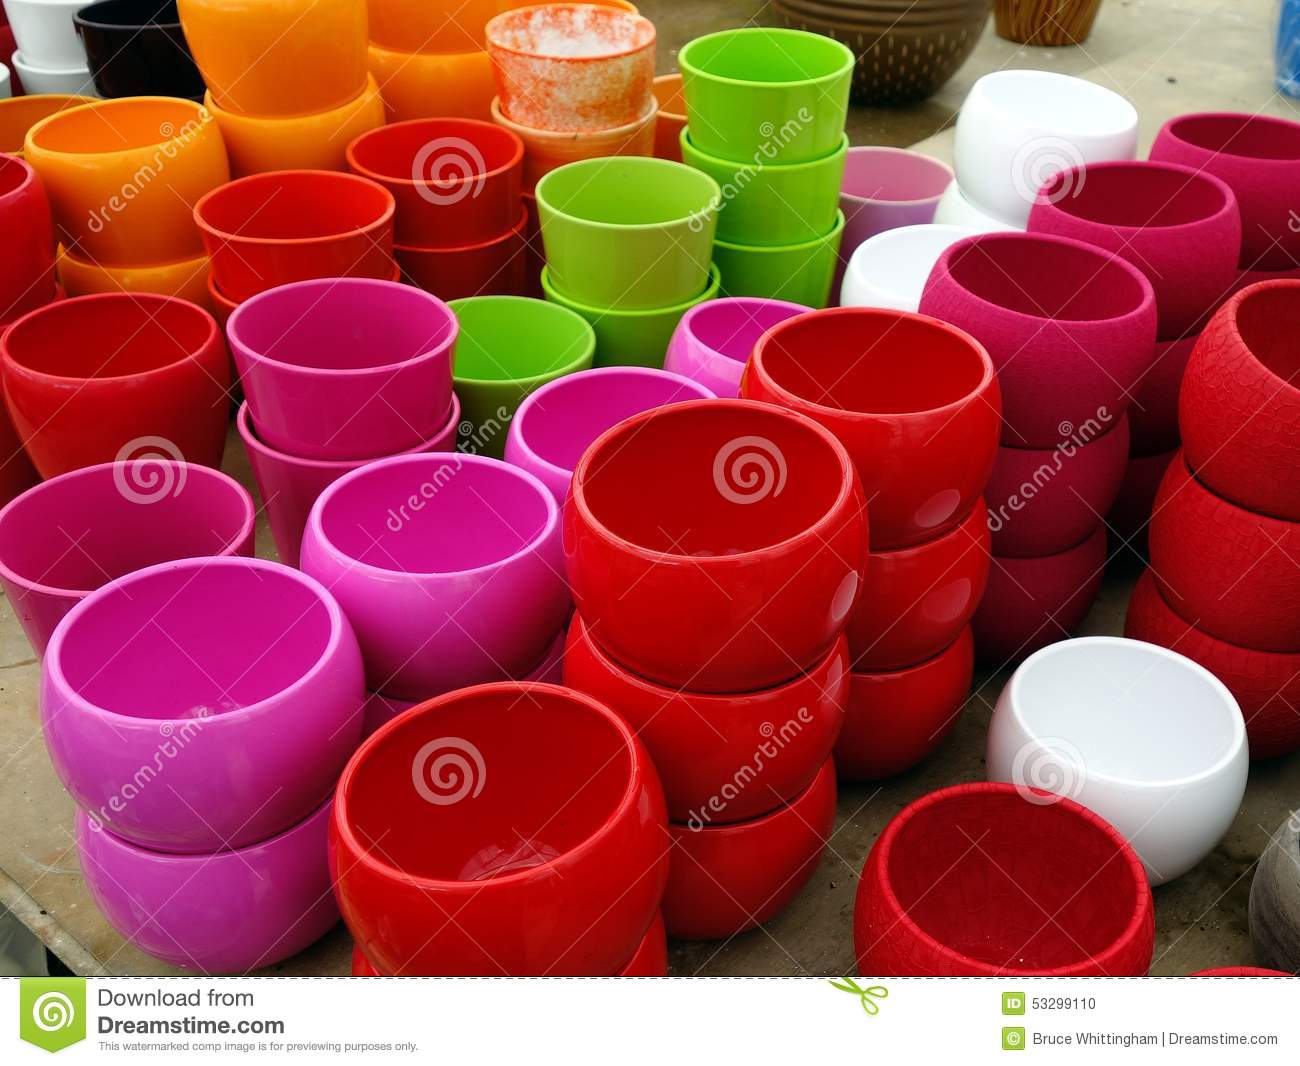 Colorful Plastic Flower Pots Stock Photo - Image of decorative, pots ...